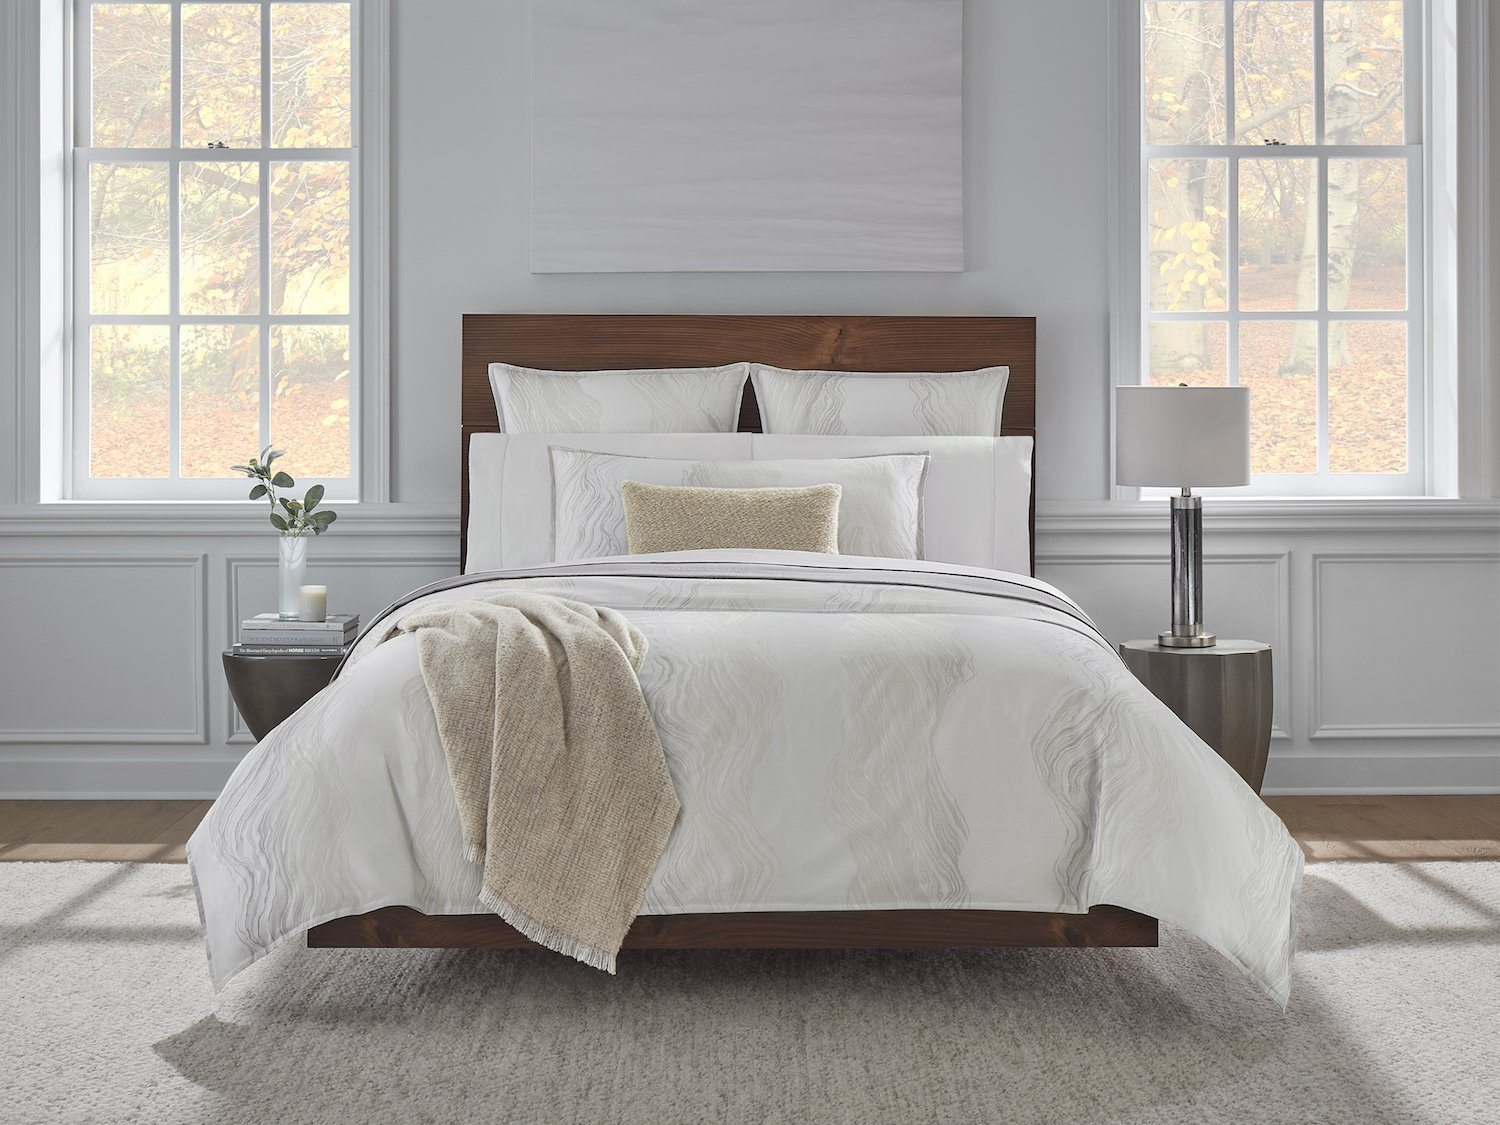 Melba Tin Duvet Cover & Shams By Sferra | Fig Linens and Home